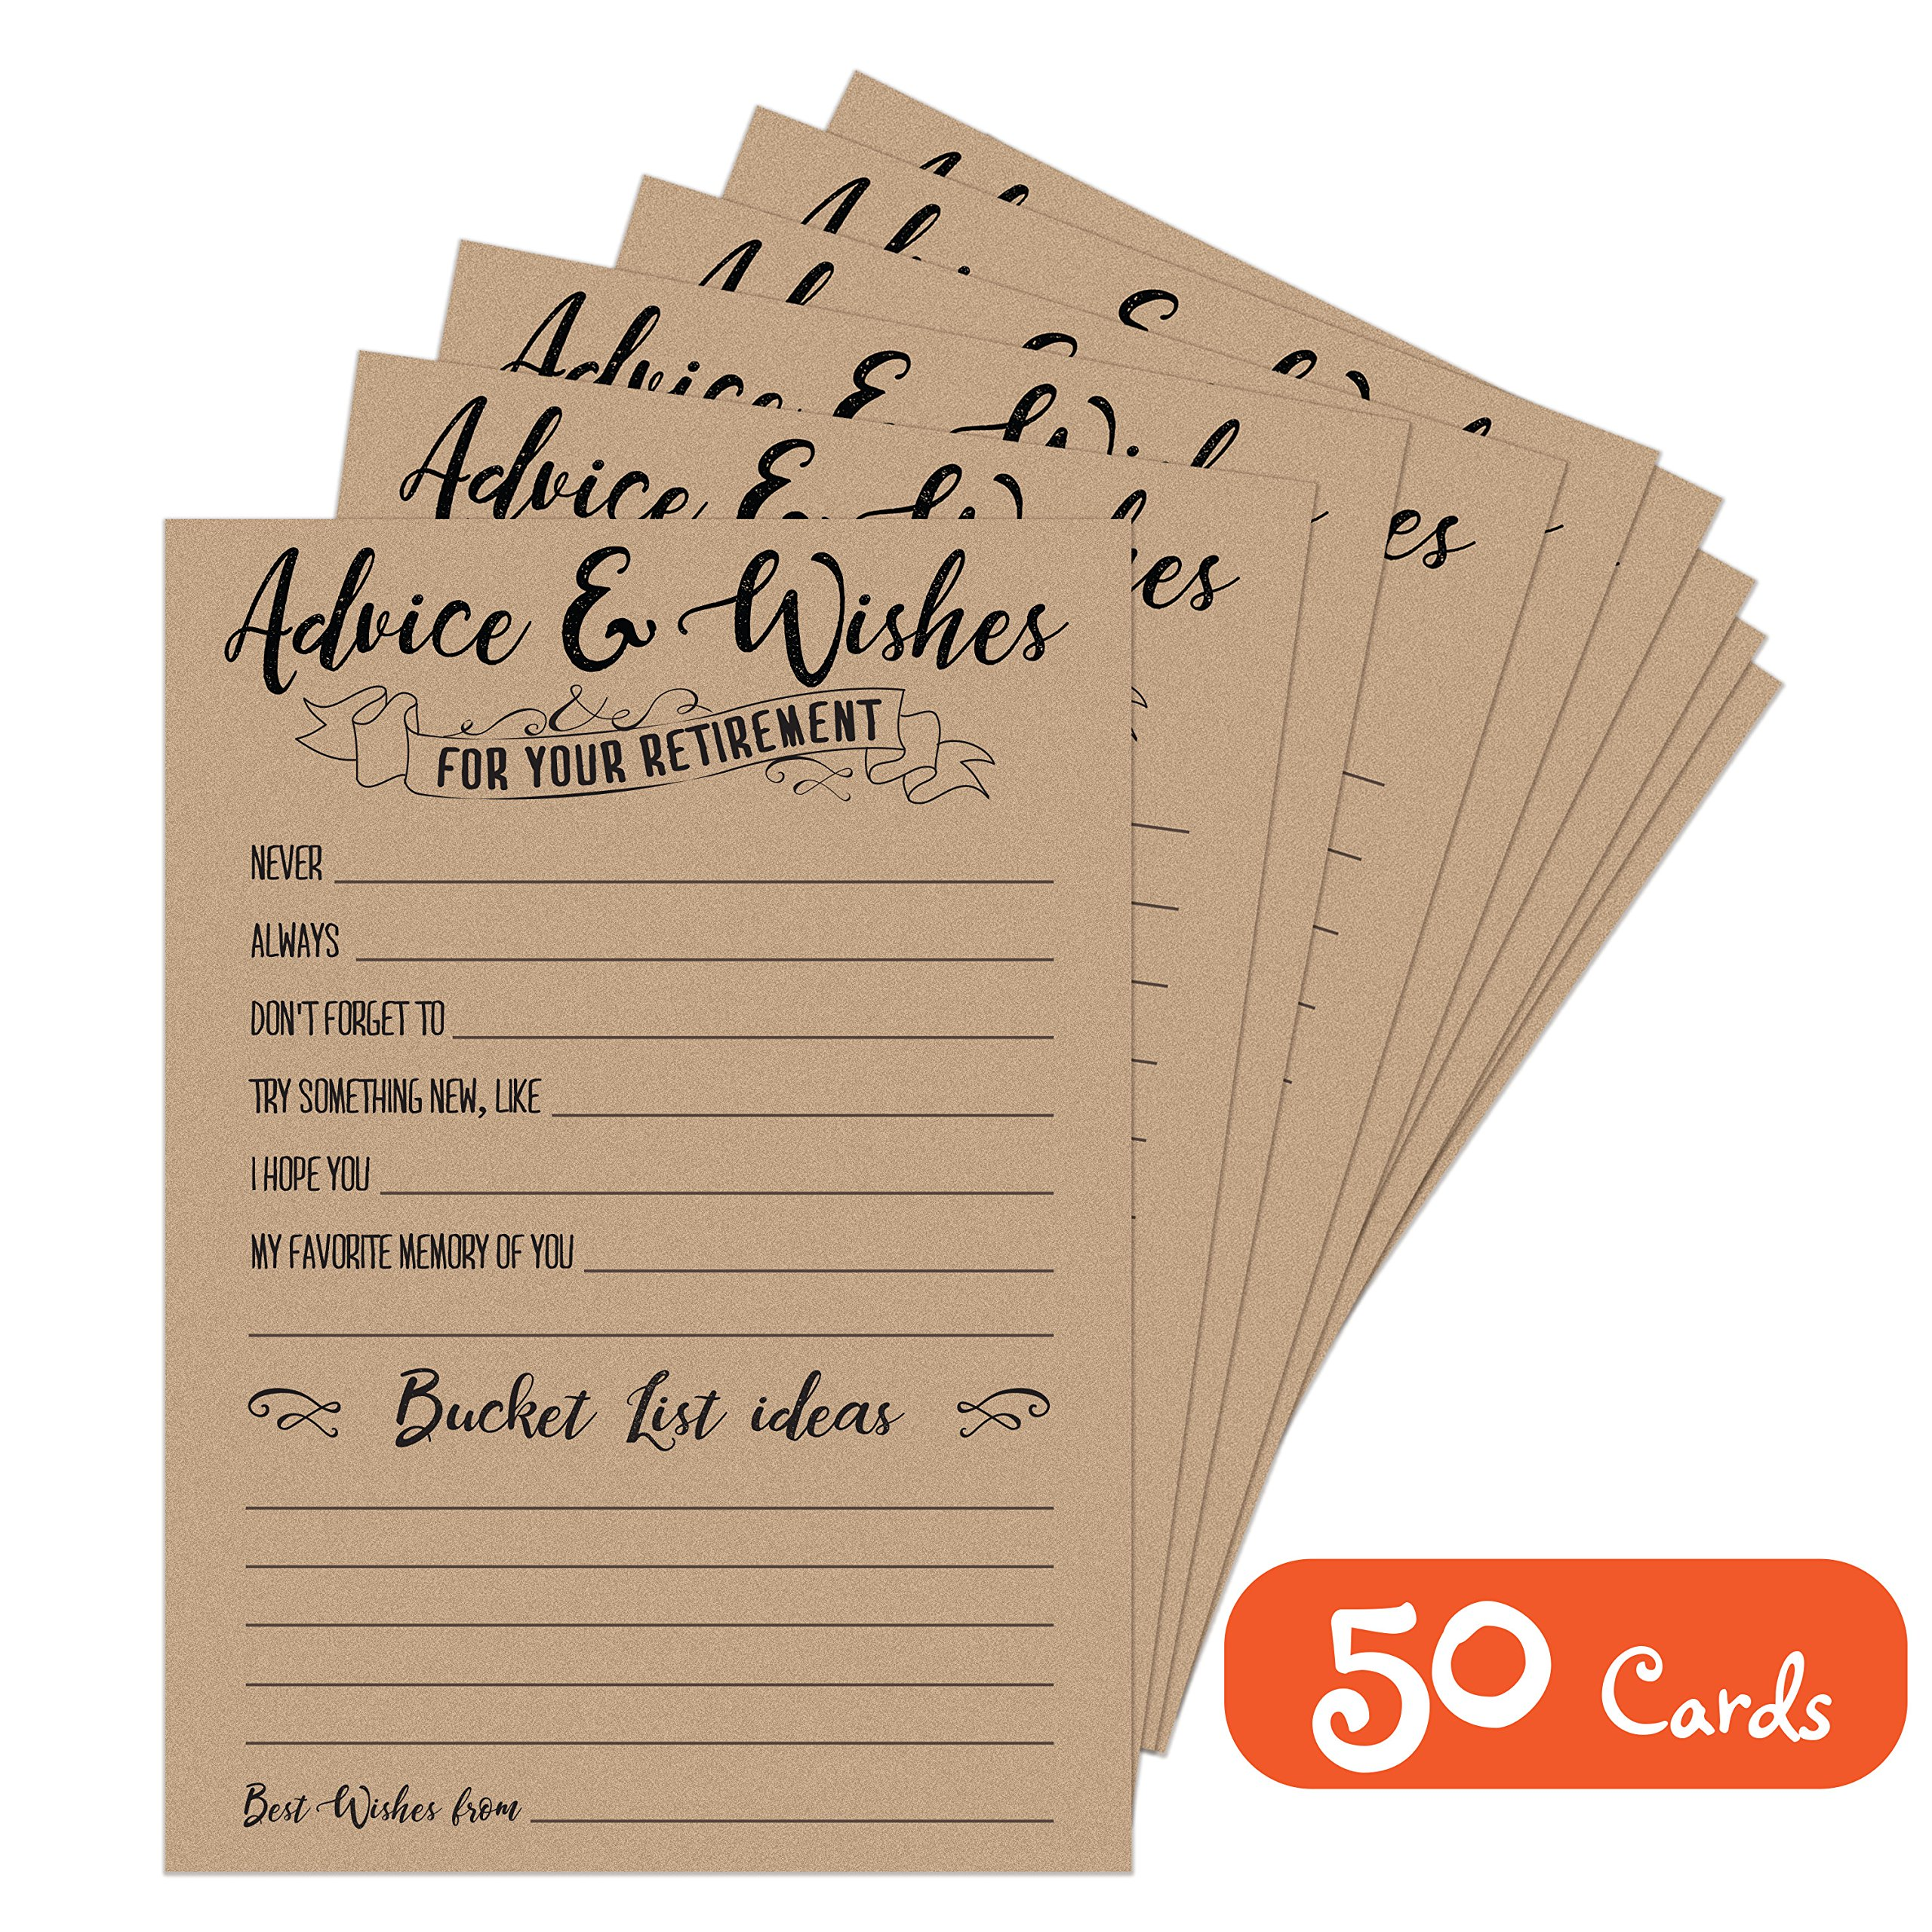 Retirement Party Advice and Wishes Cards   Party Decorations and Supplies for the Newly Retired   Guest Book Alternative by Twerp